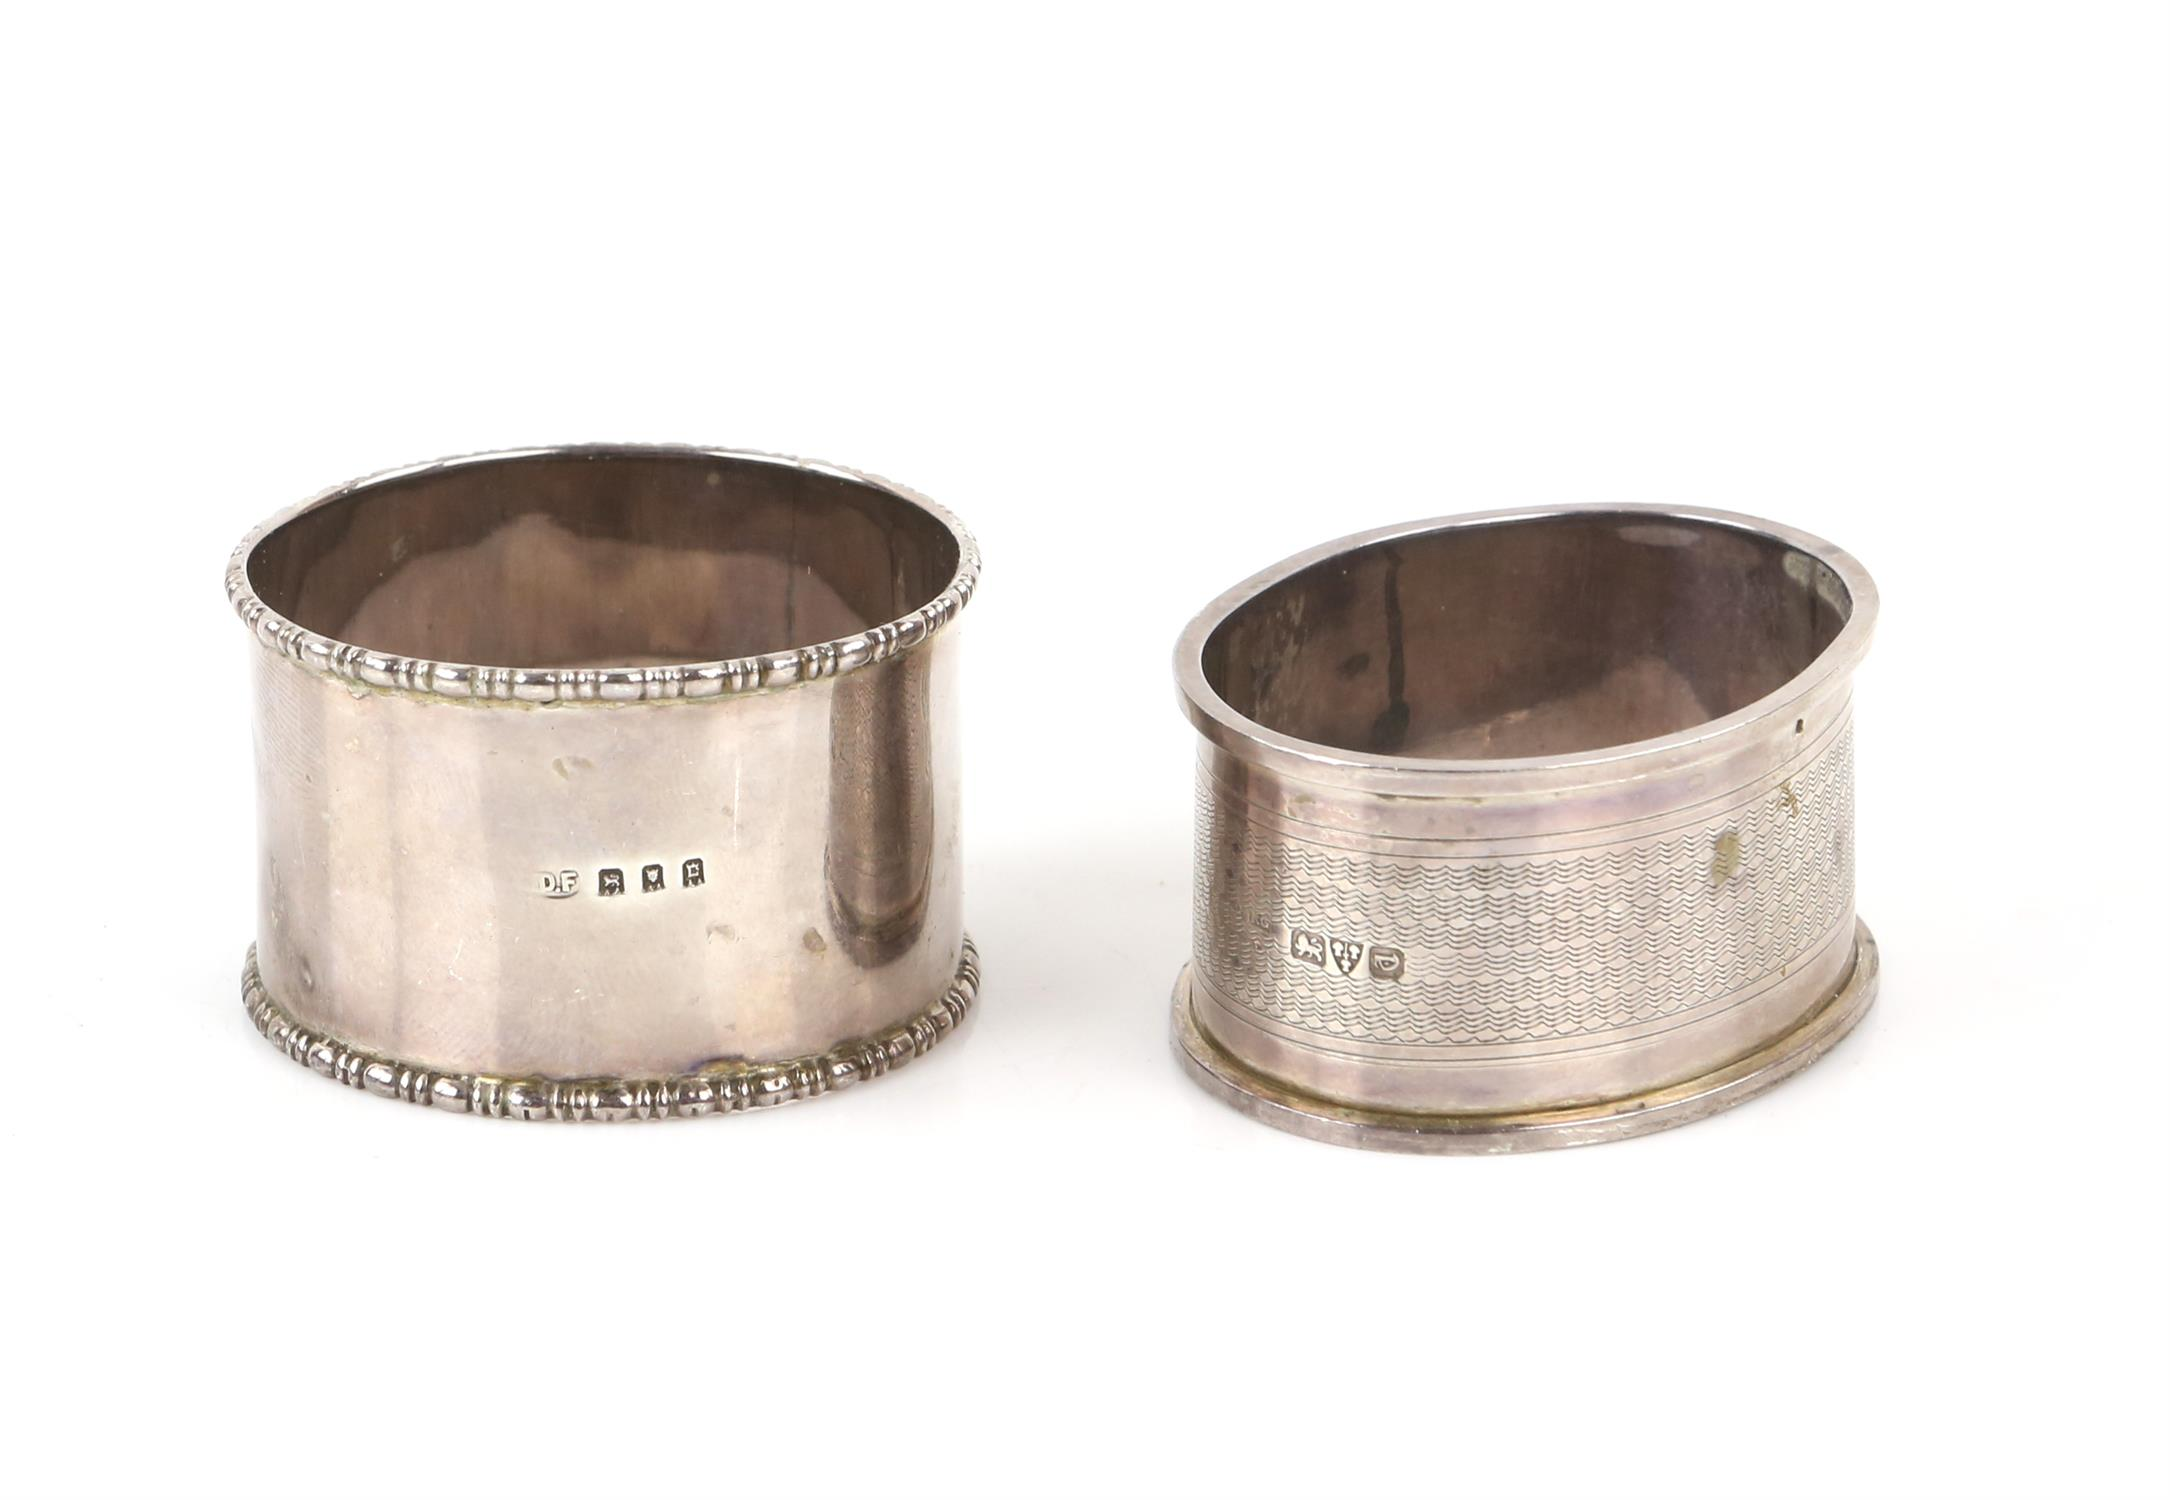 Pair of oval pierced silver bon-bon dishes, by Robert Pringle & Sons London 1927, - Image 10 of 11